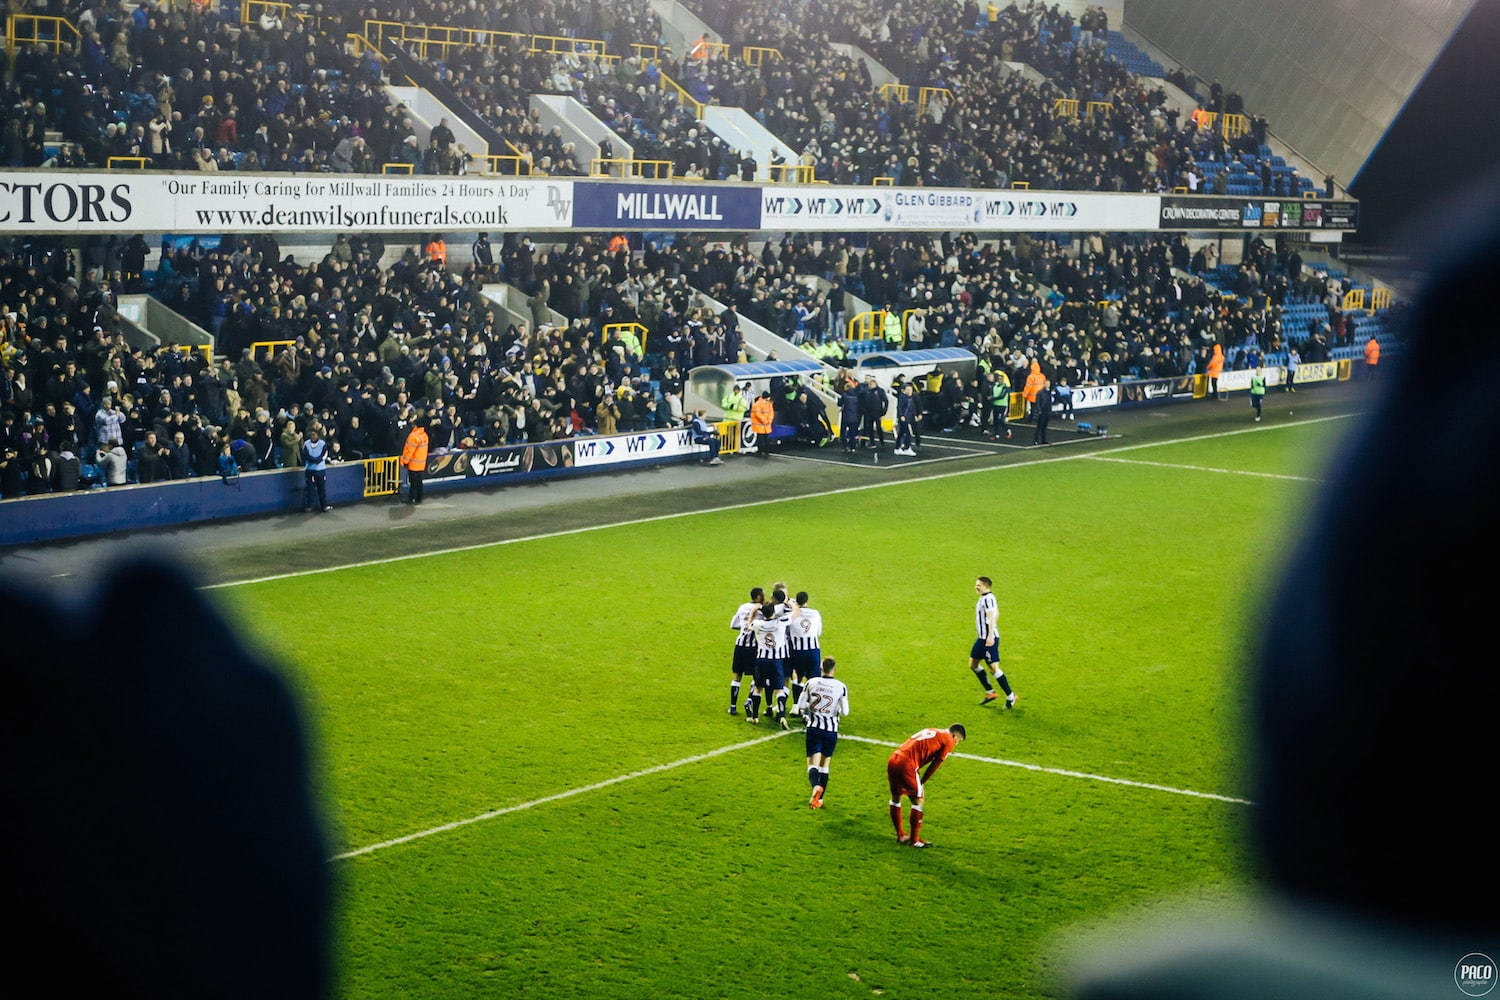 au-stade-the-den-millwall-fc-img13